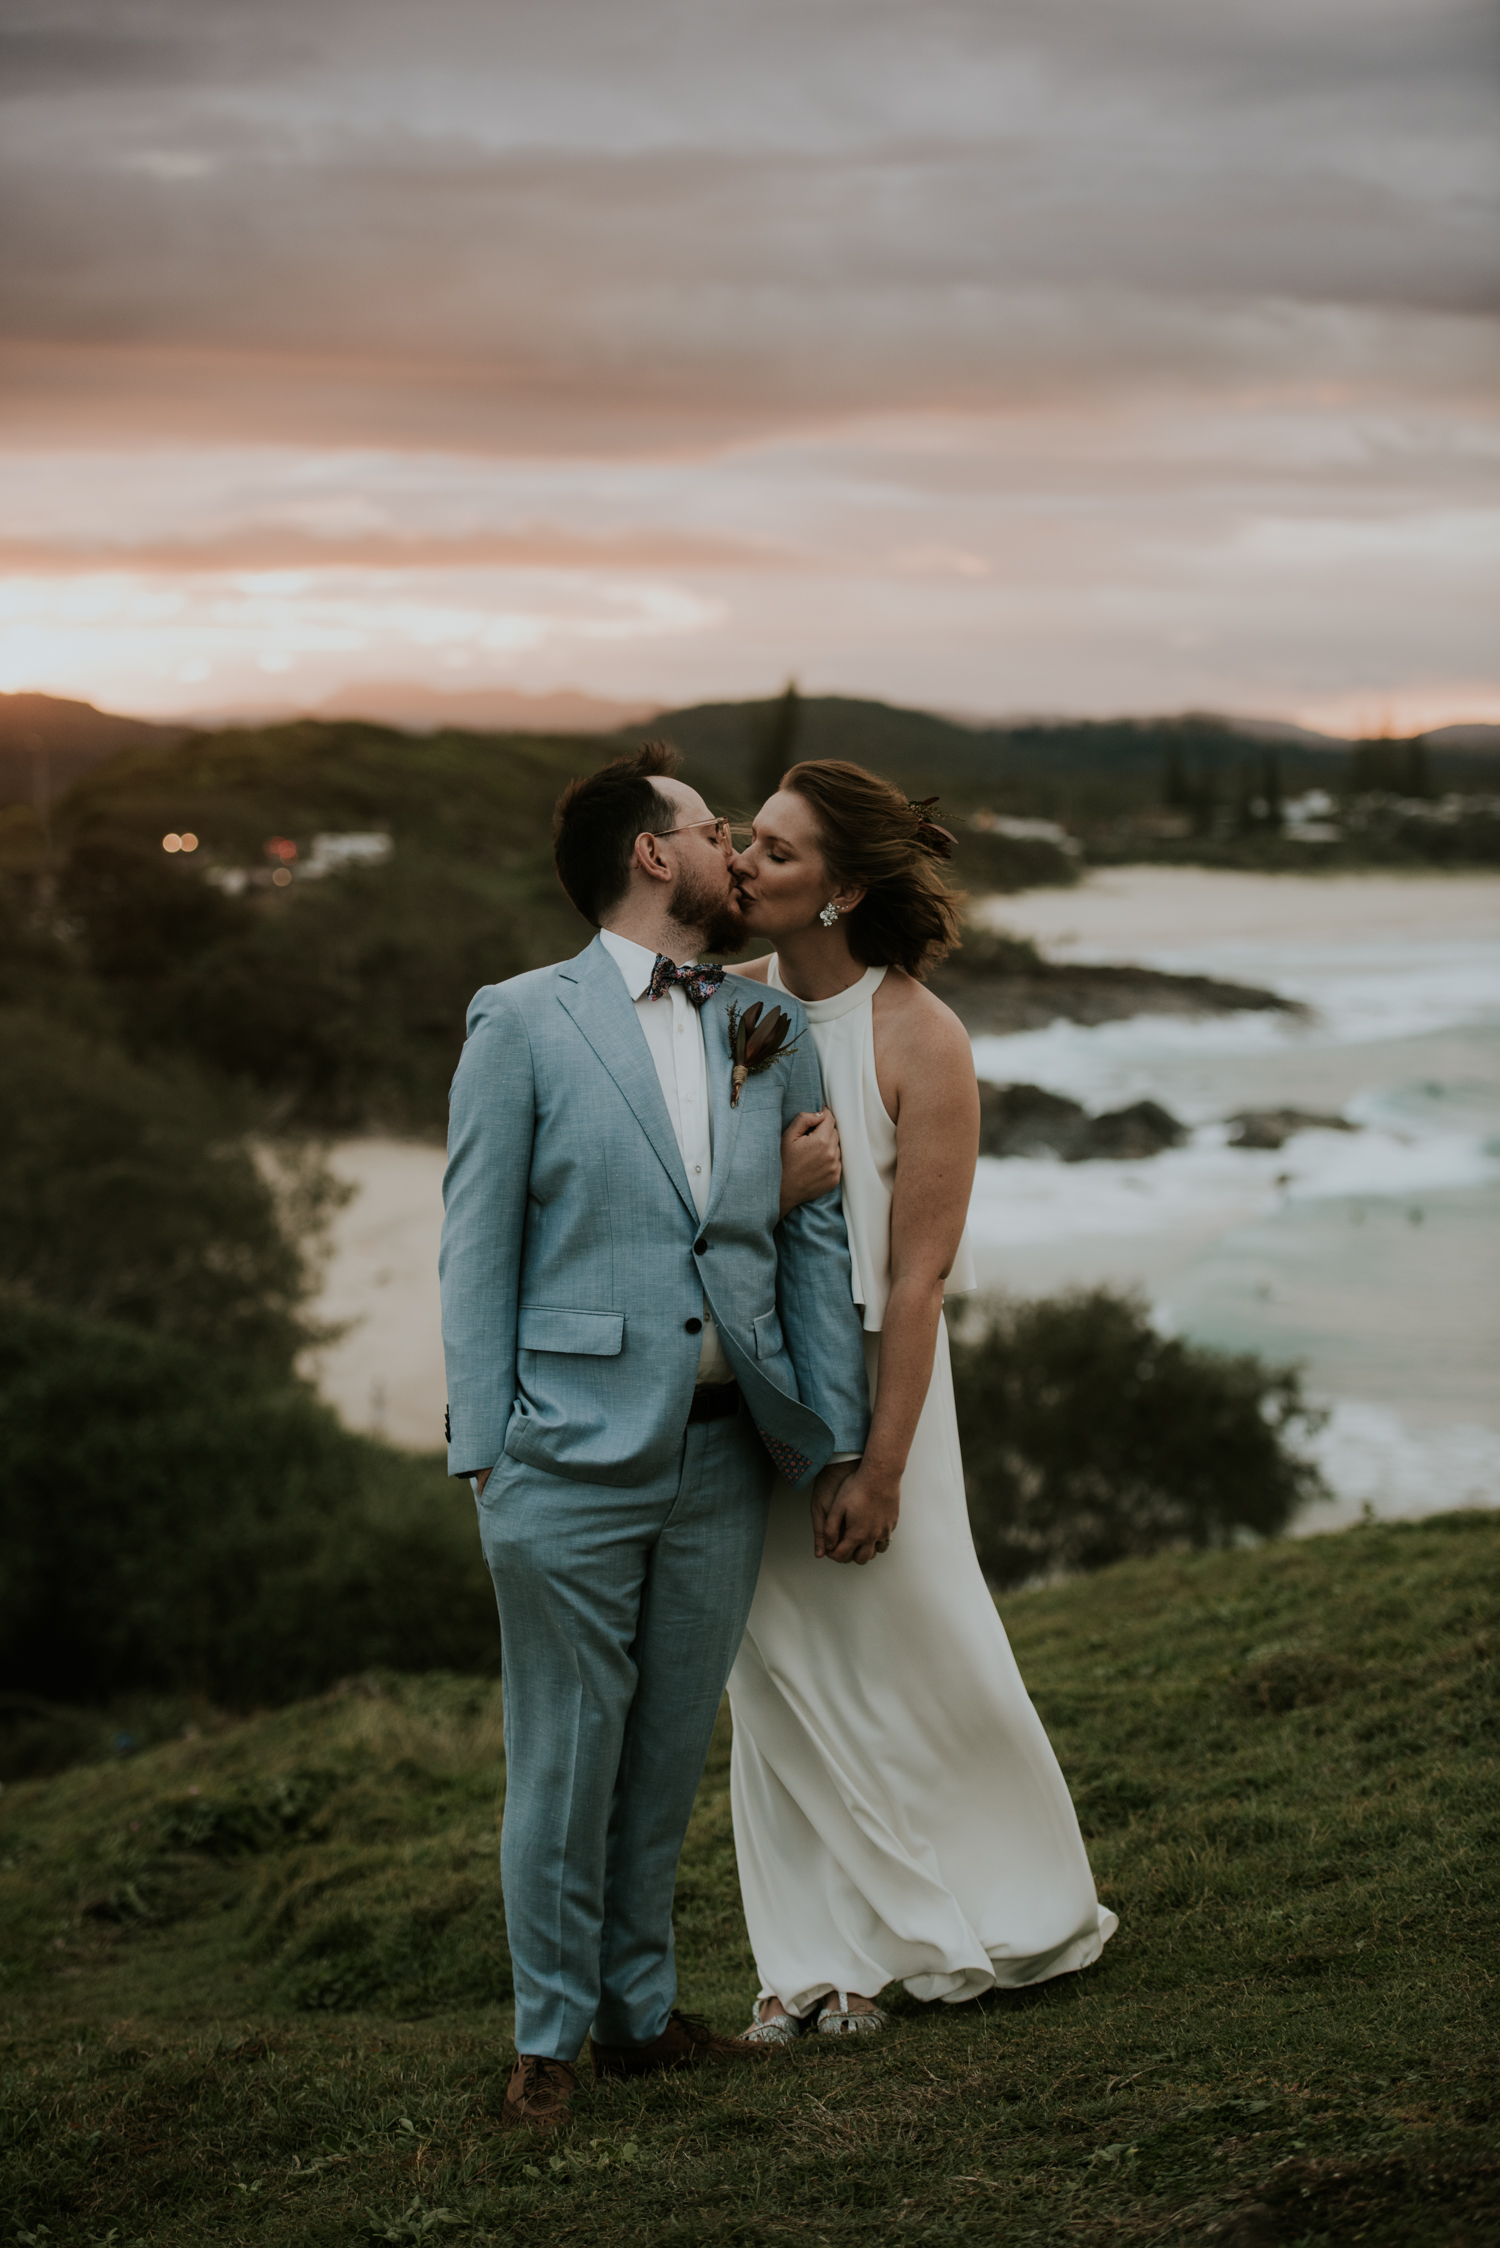 Brisbane Wedding Photographer | Tweed Coast Elopement Photography-73.jpg